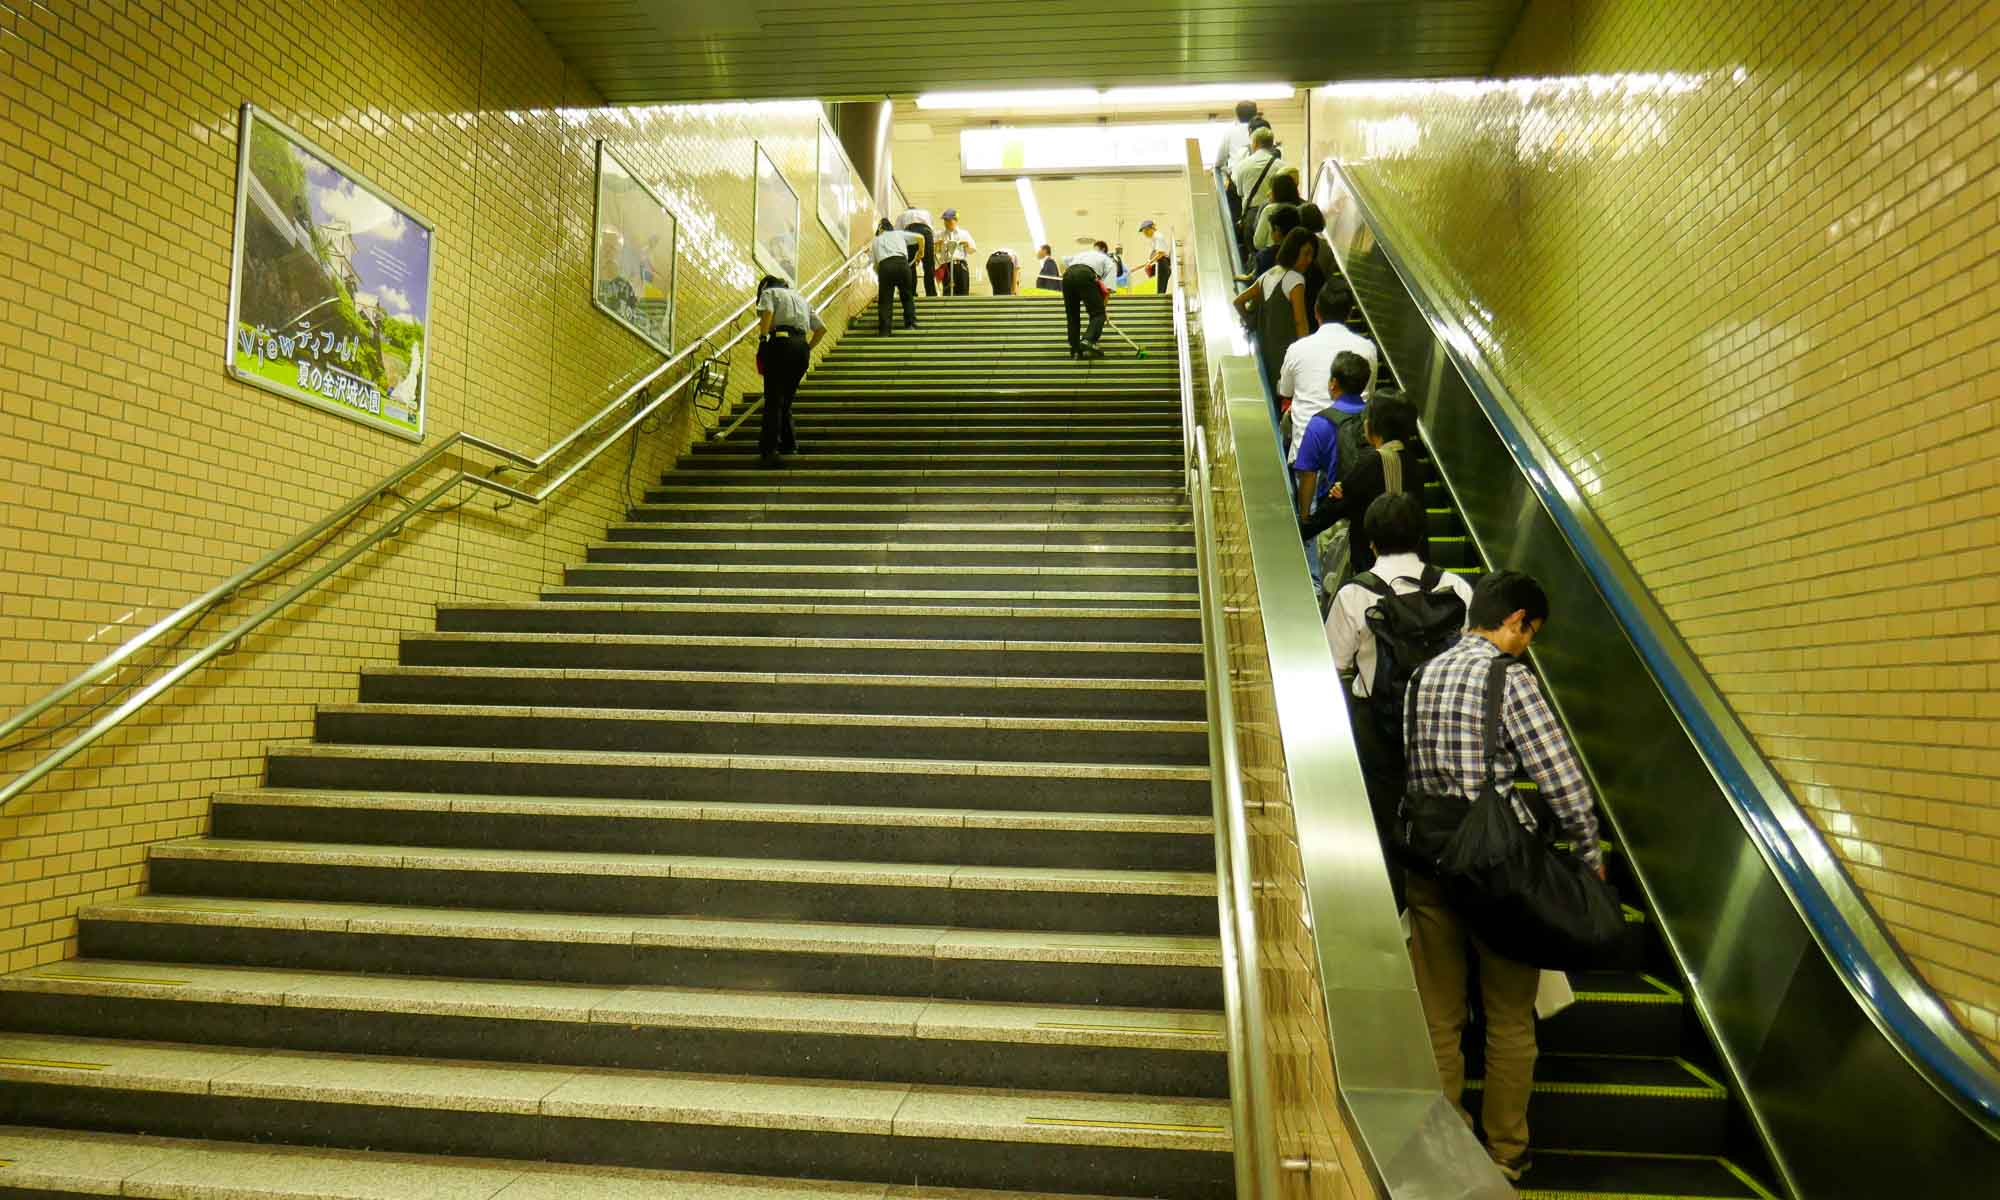 Cleaners cleaning the stairs and banisters in the Tokyo metro